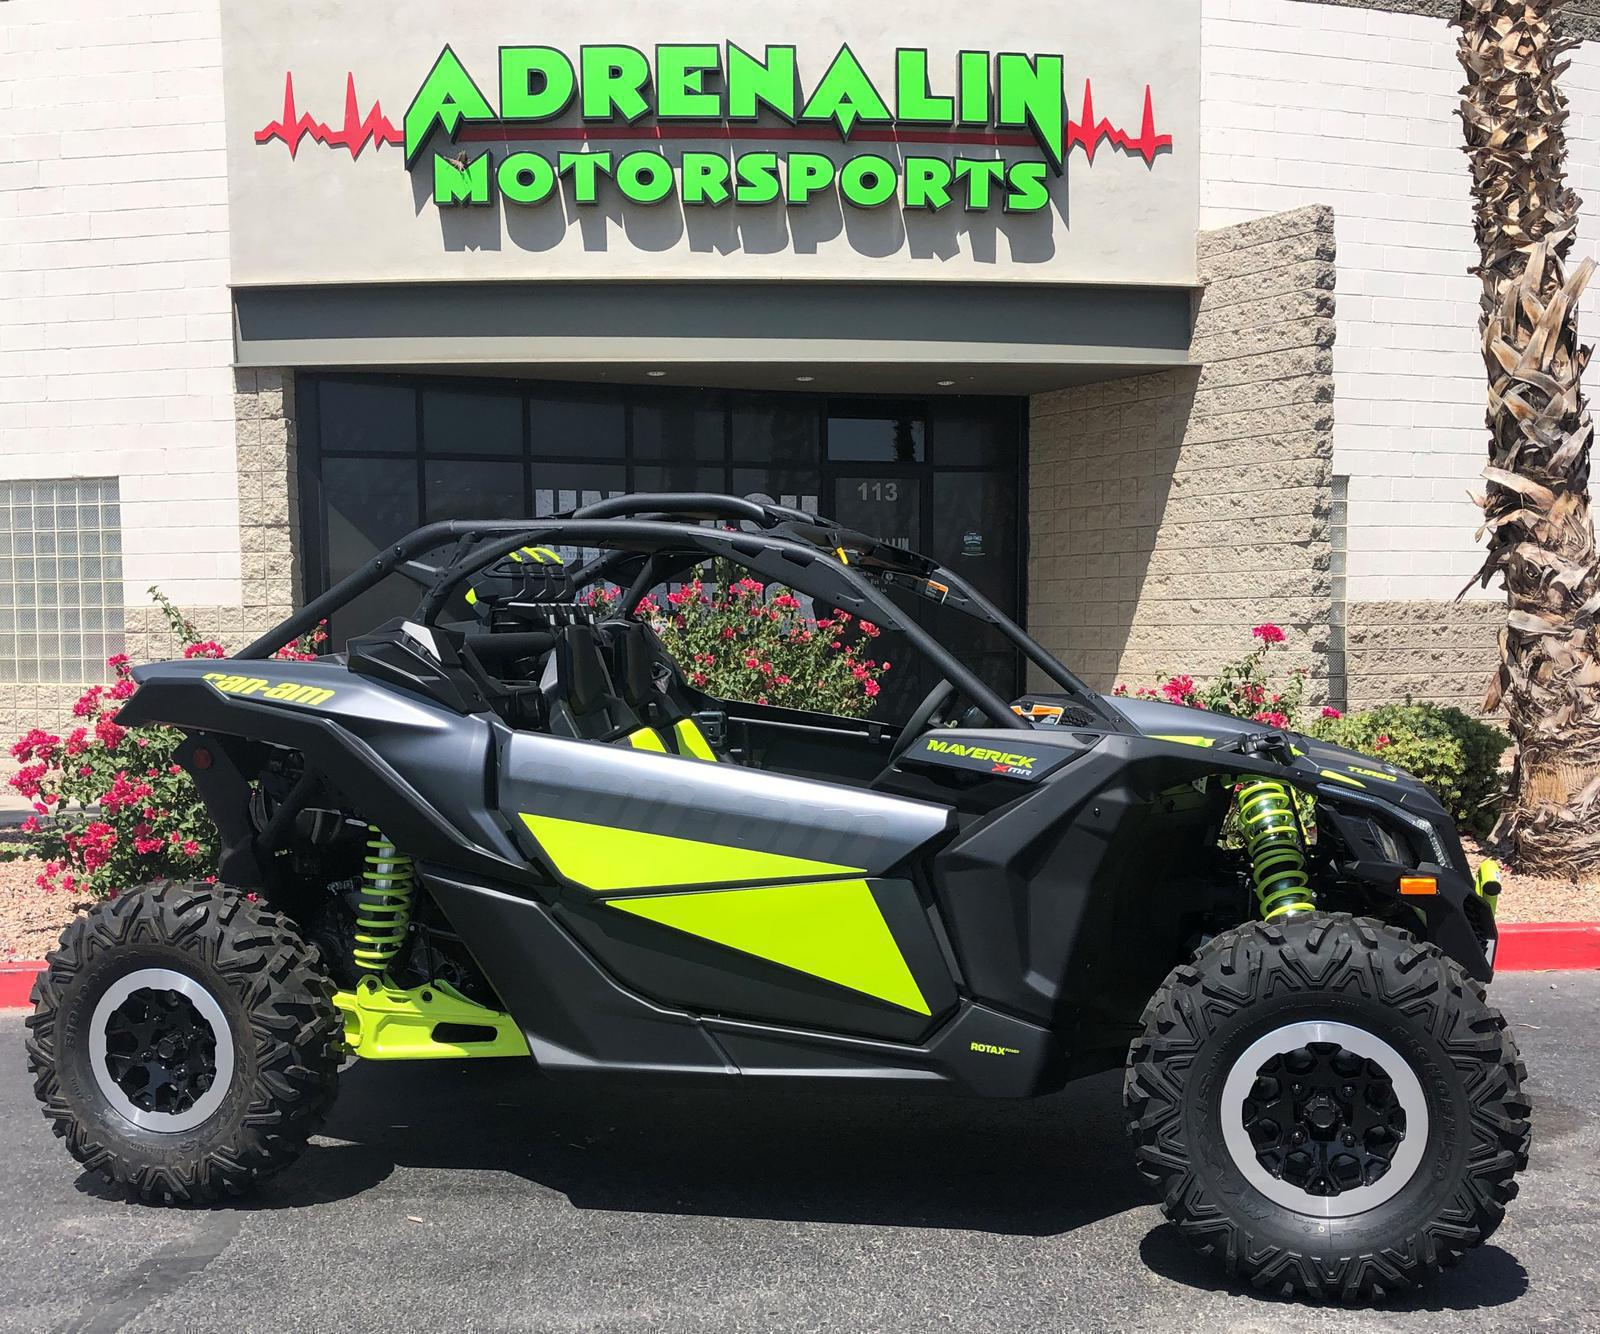 Inventory from Can-Am Adrenalin Motorsports Casa Grande, AZ (520